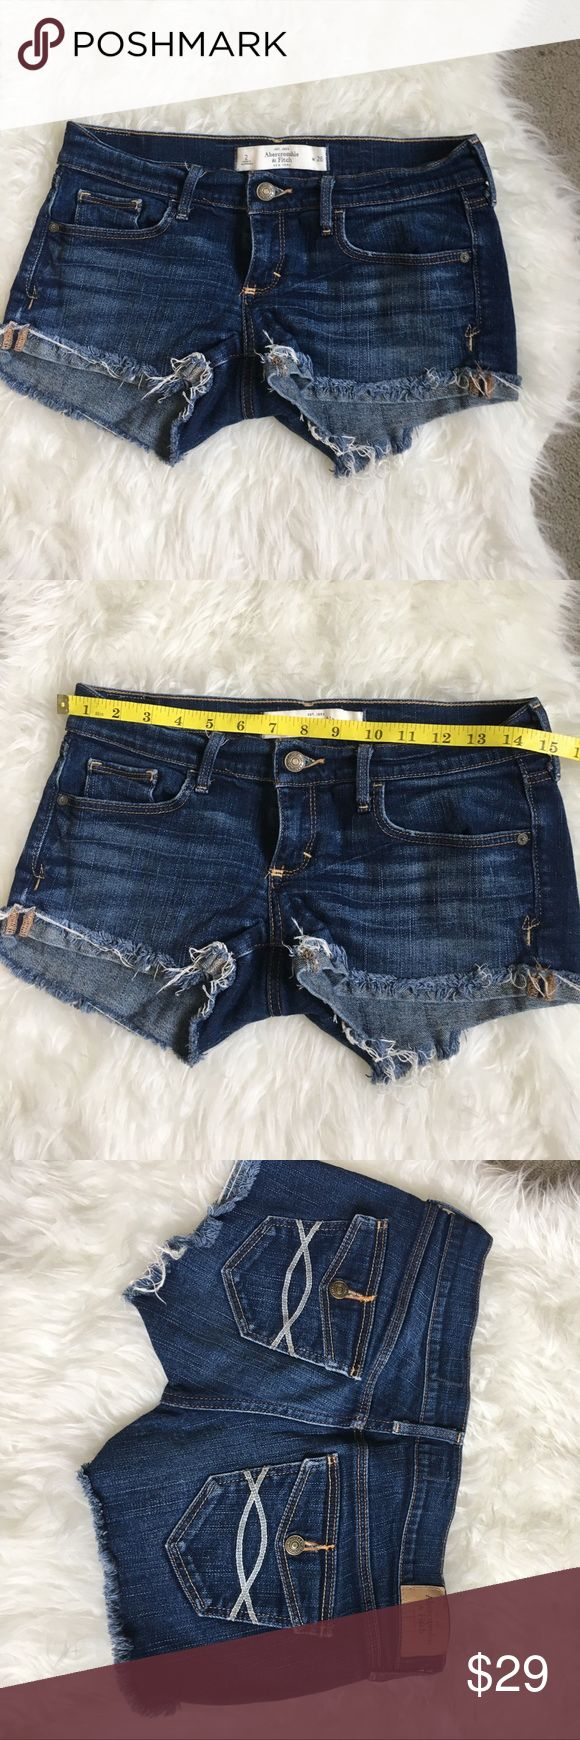 Abercrombie and fitch shorts size 2 Perfect condition (NO TRADE) Abercrombie & Fitch Shorts Jean Shorts